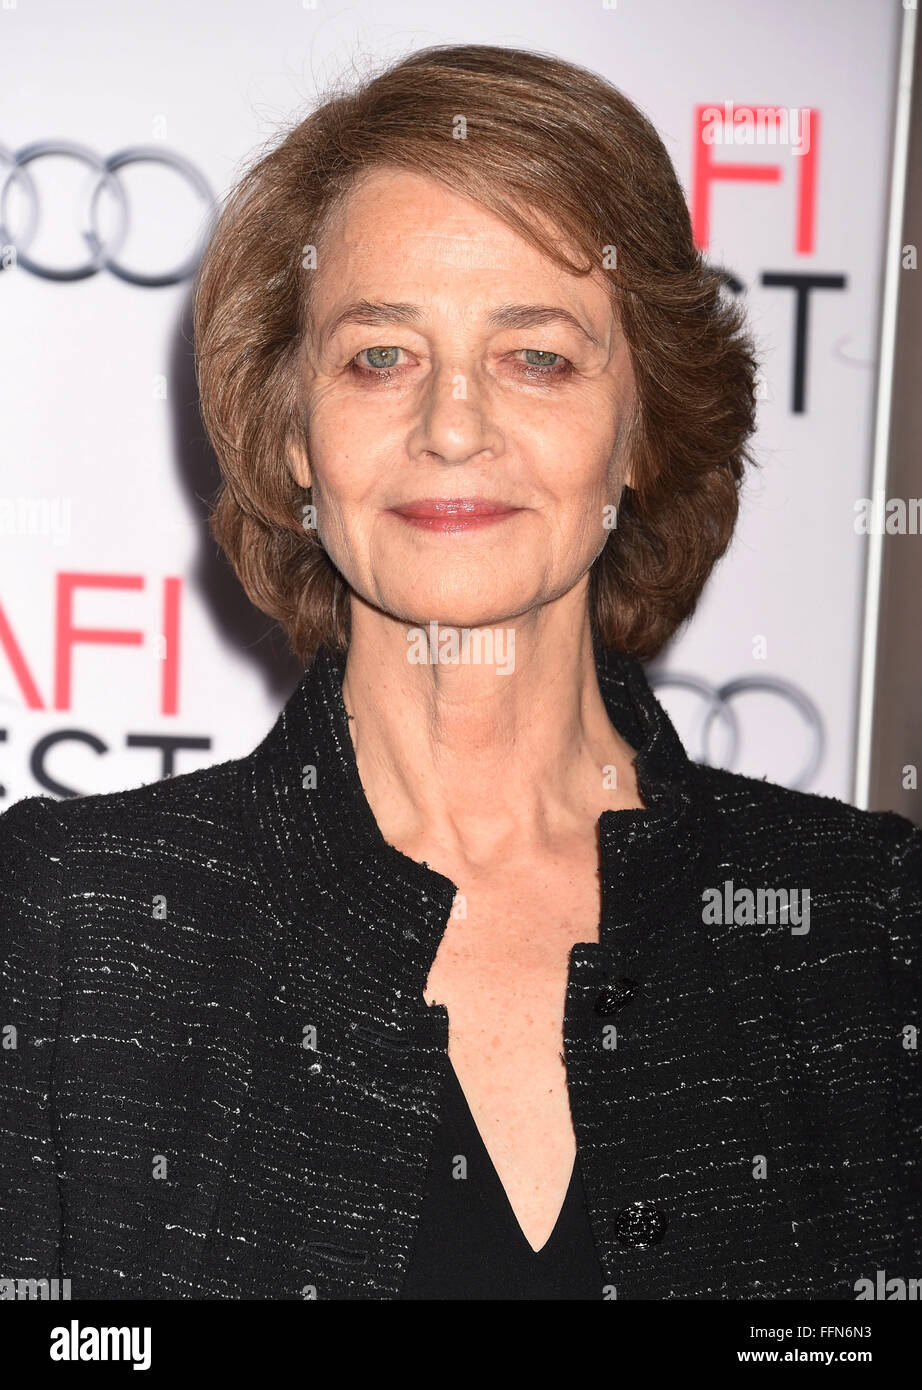 Actress Charlotte Rampling arrives at the AFI FEST 2015 Presented by Audi Tribute to Charlotte Rampling and Tom - Stock Image